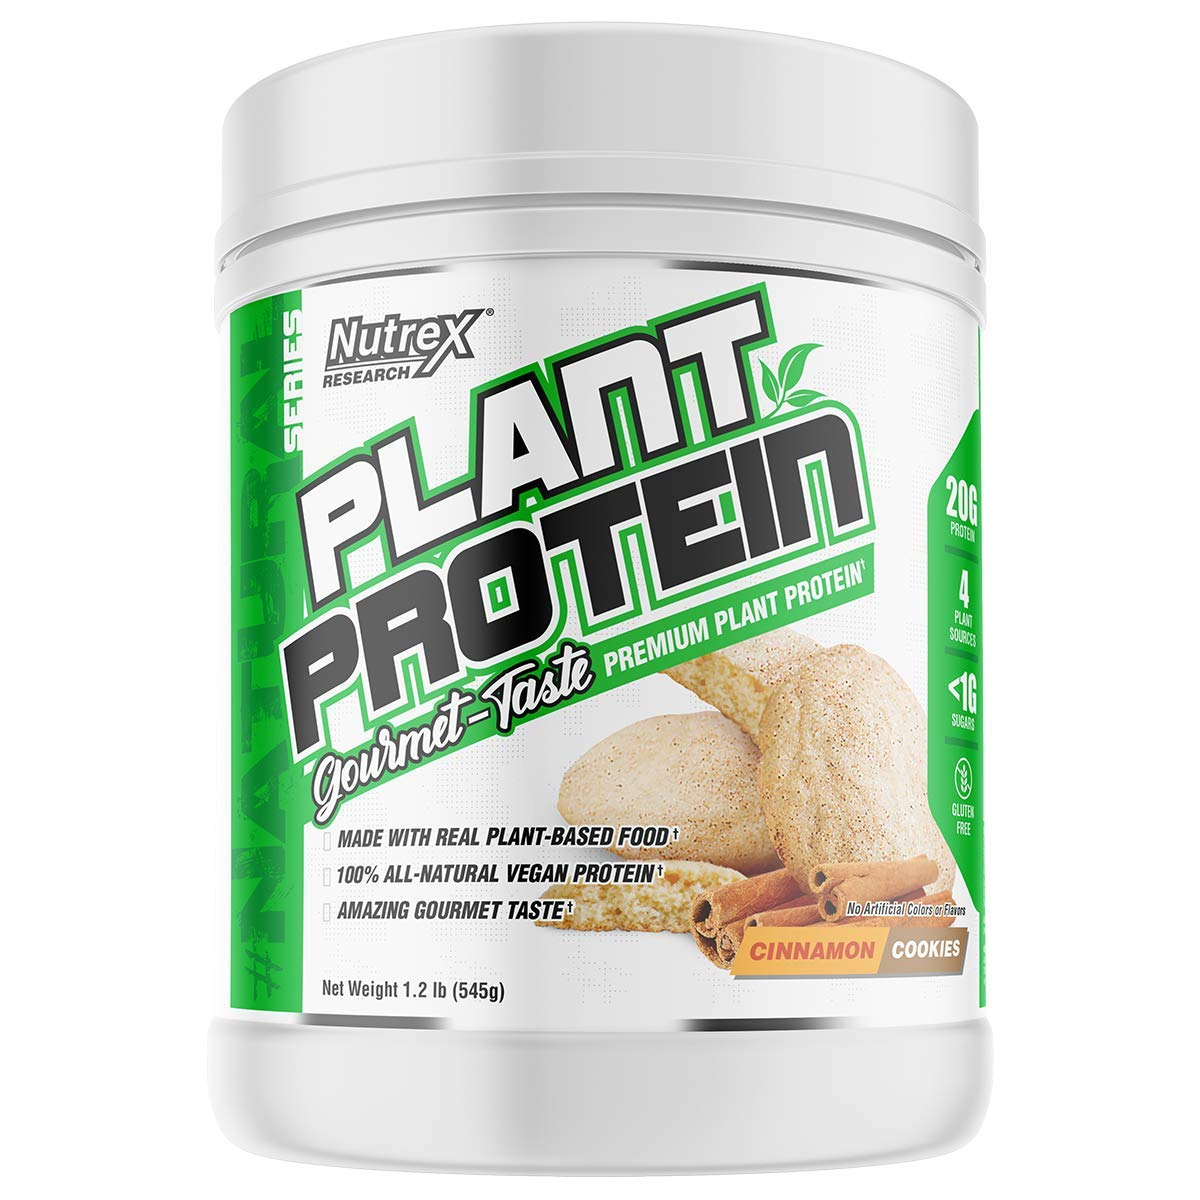 Nutrex Research Plant Protein | Great Tasting Vegan Plant Based Protein | No Artificial Flavors, Colors, or Sweeteners, Gluten Free, Lactose Free | 18 Servings (Cinnamon Cookies)